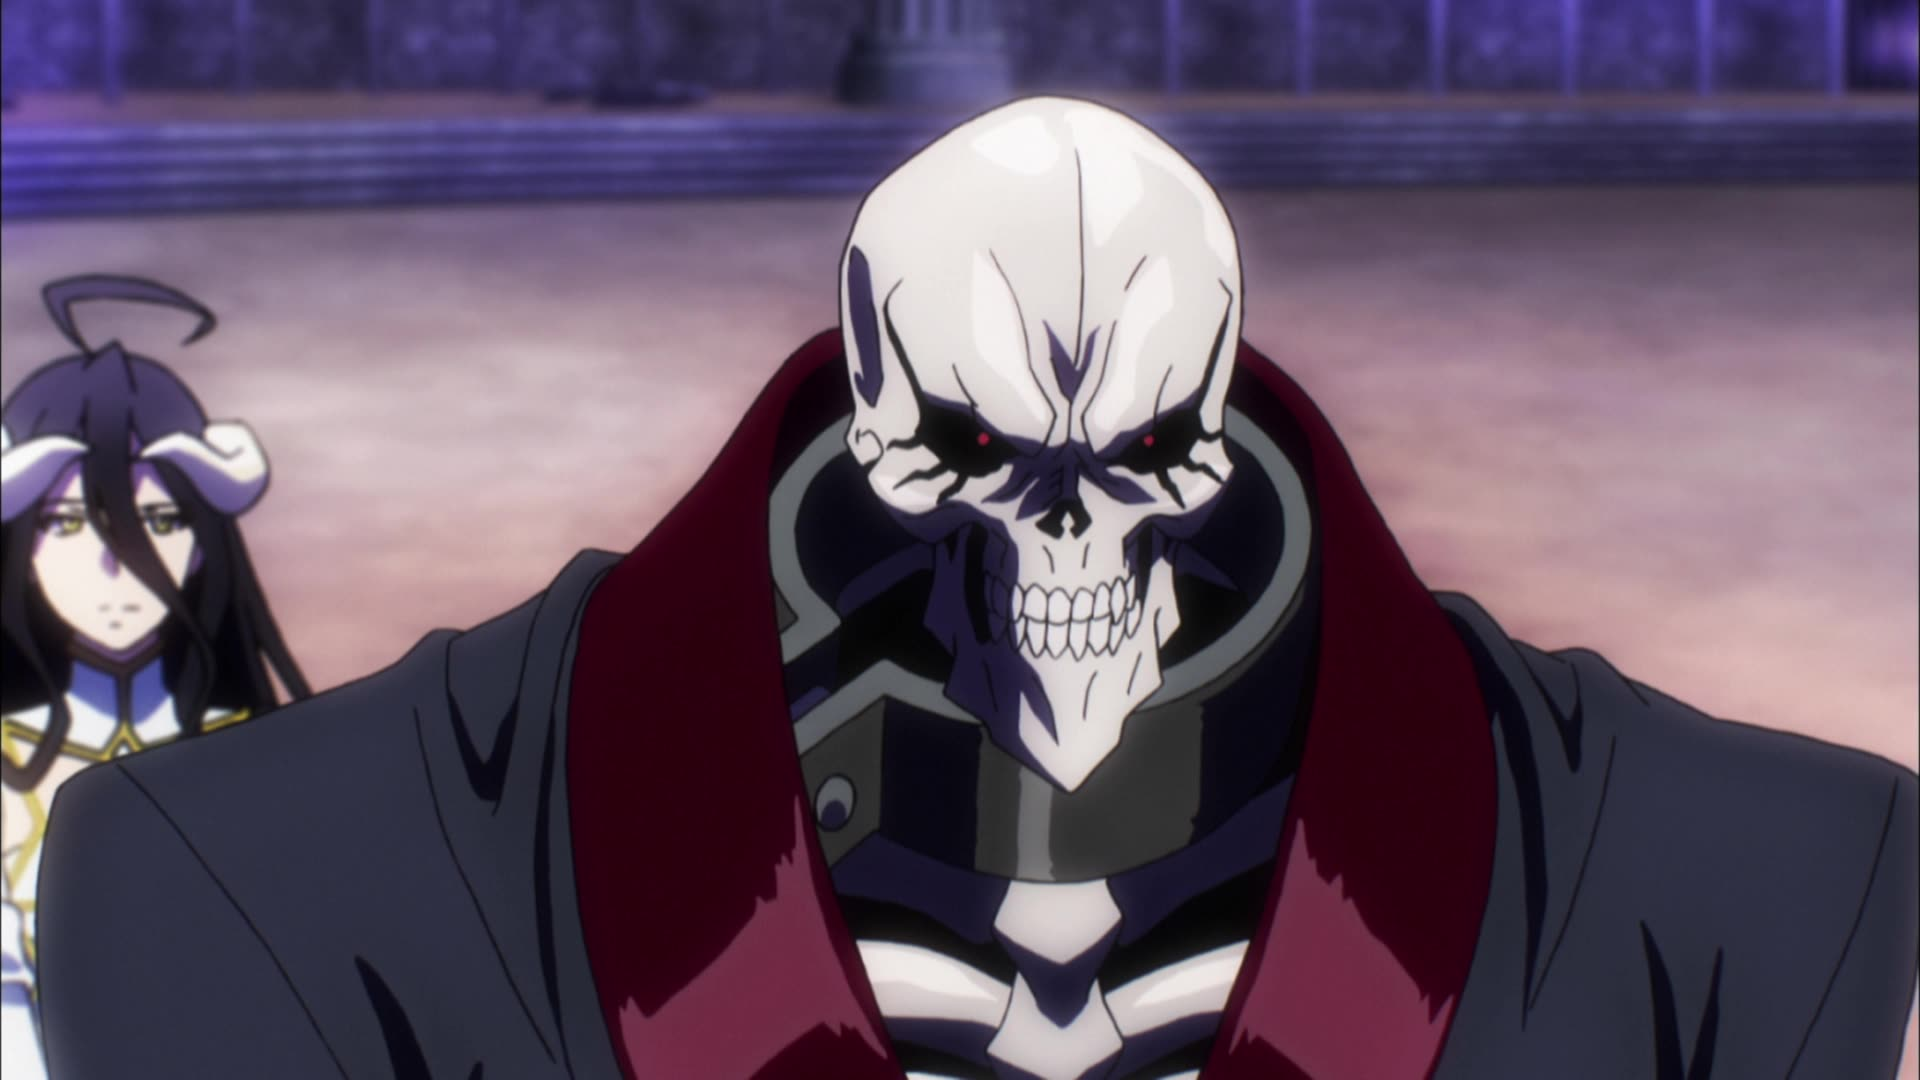 Overlord III Episode 8, A Handful of Hope, - Watch on